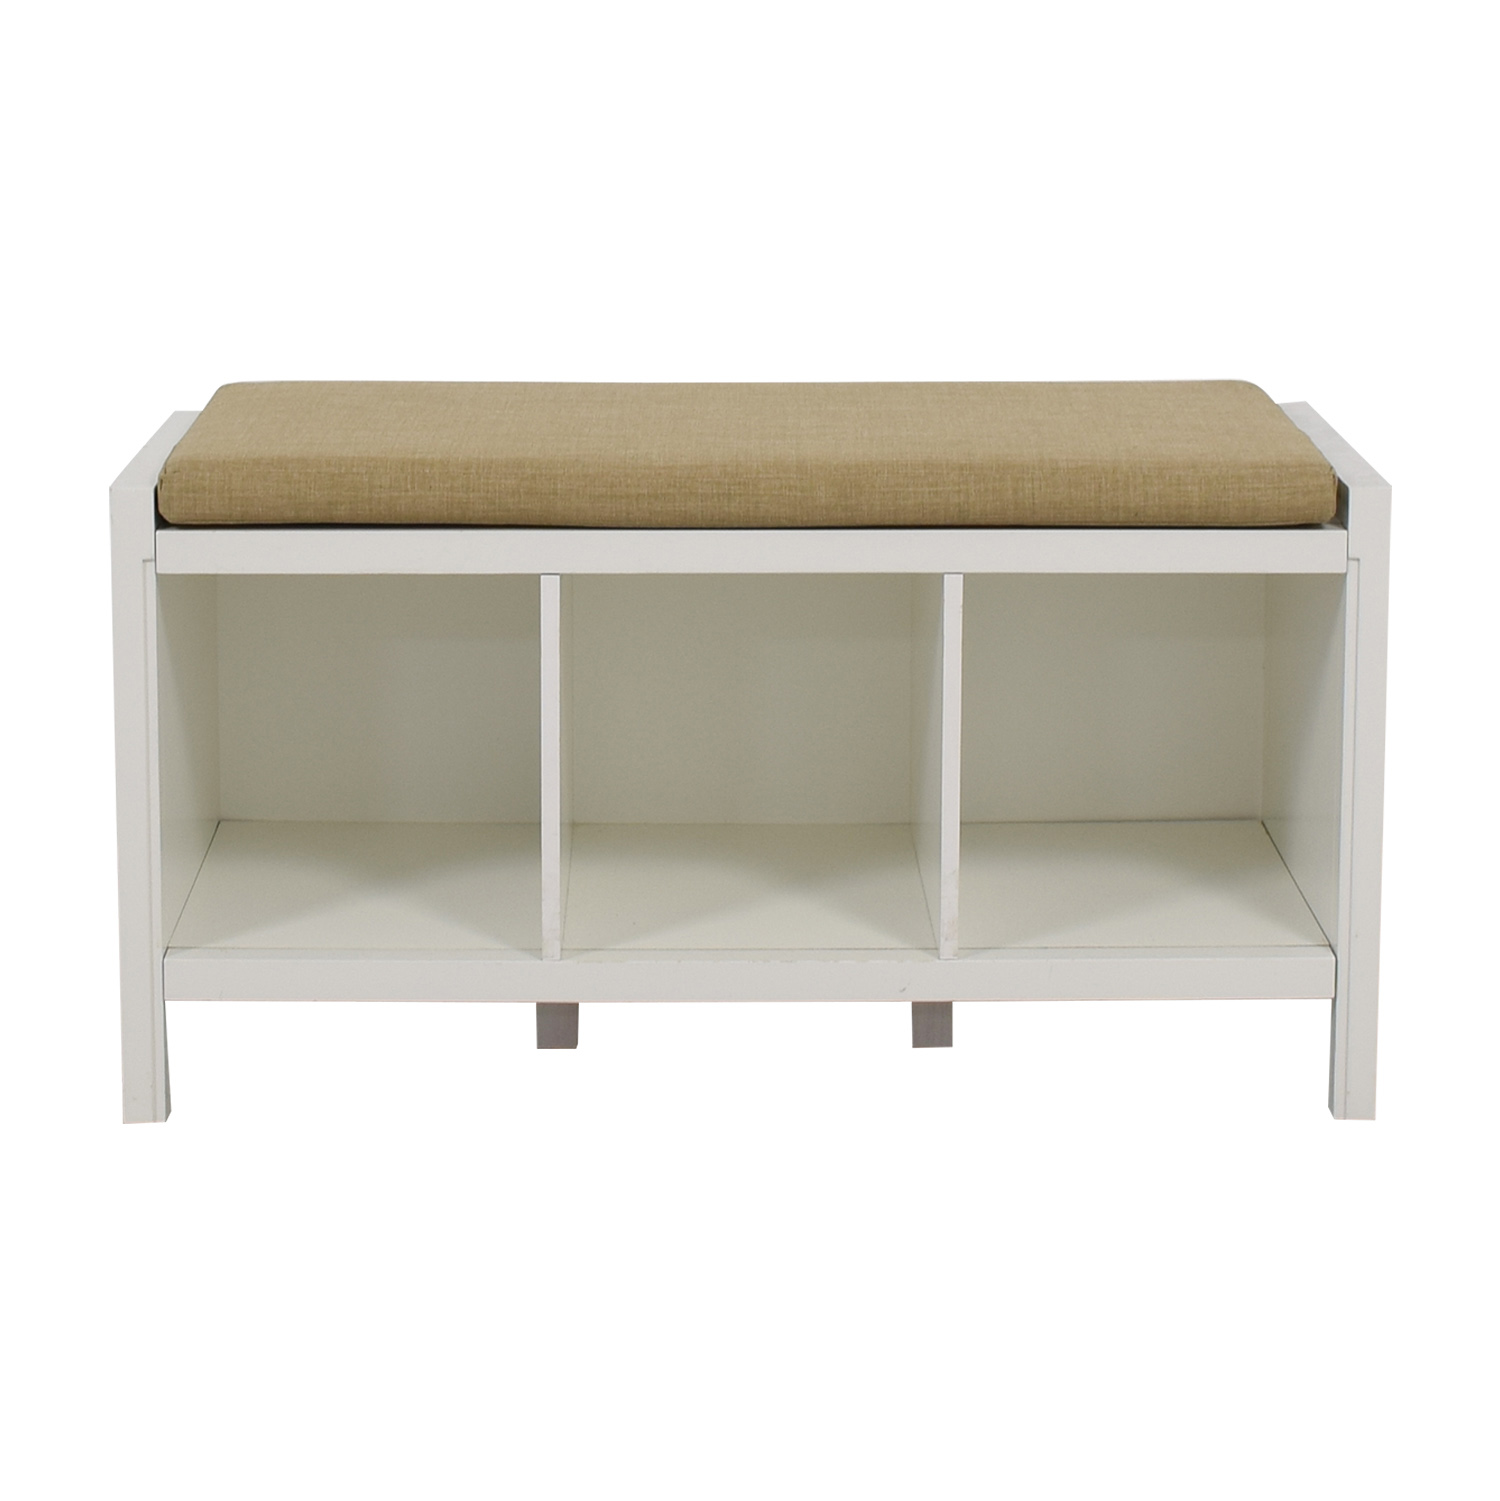 Container Store Container Store Entry Way Storage Bench dimensions